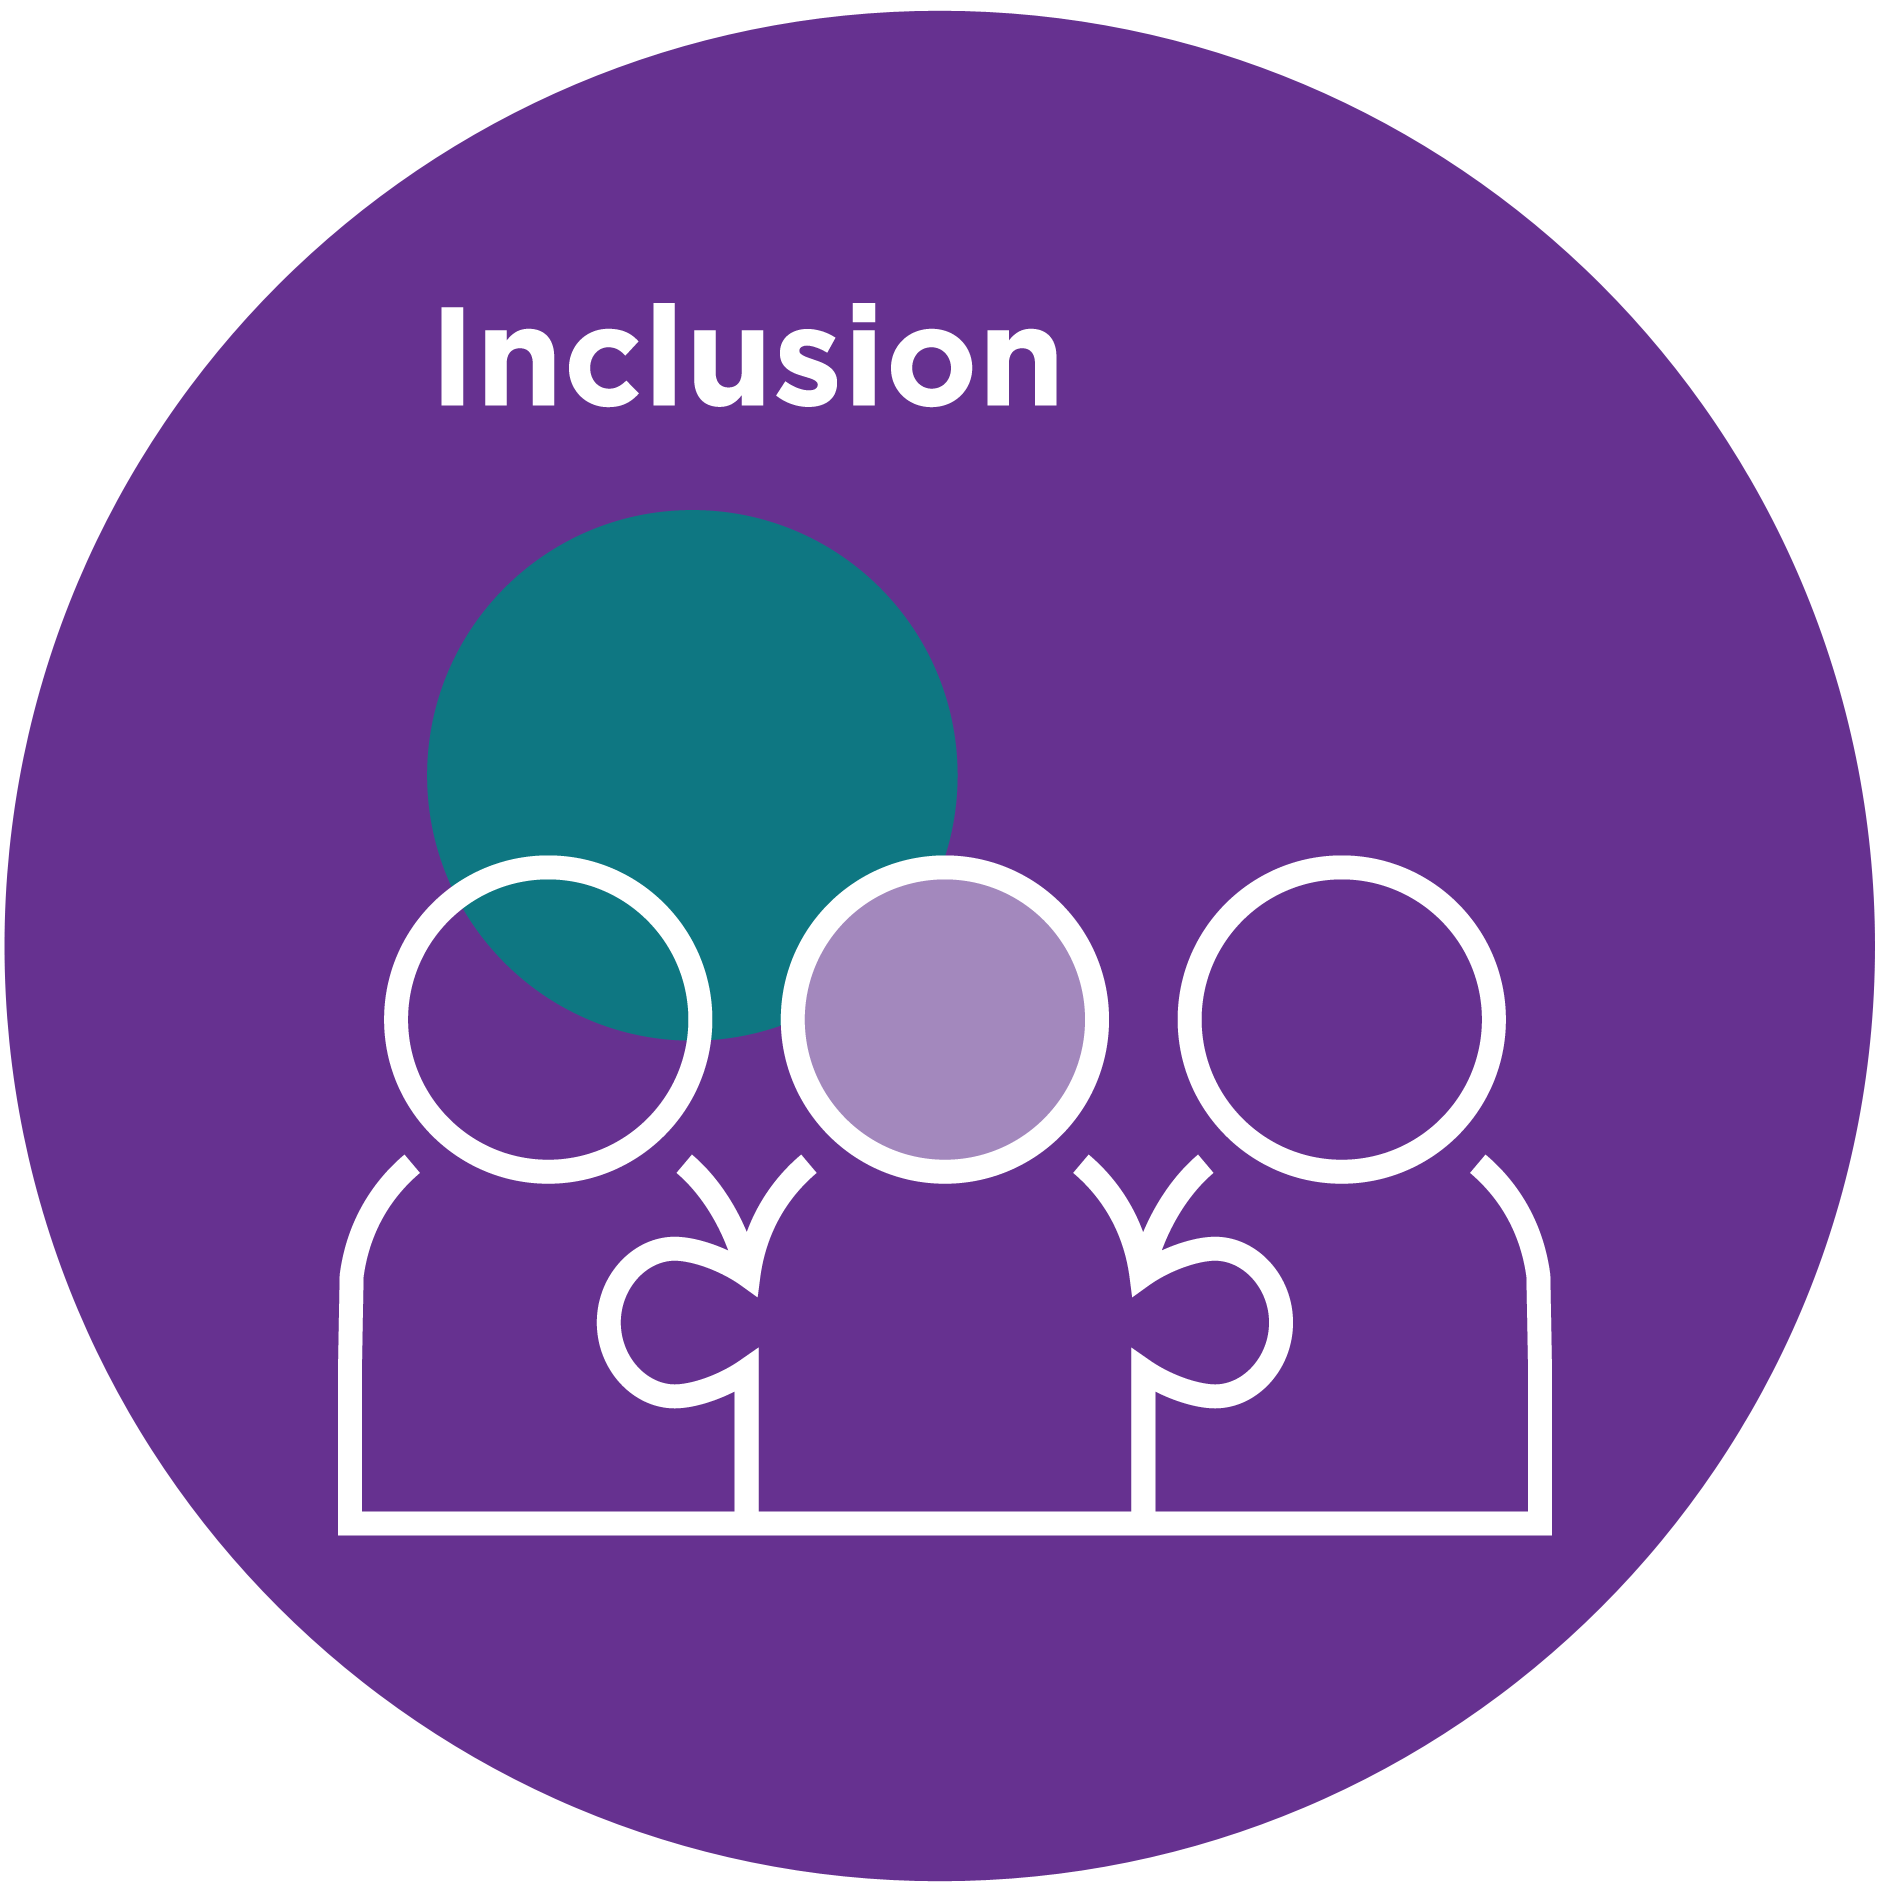 Icon of a group of people with text that reads 'Inclusion'